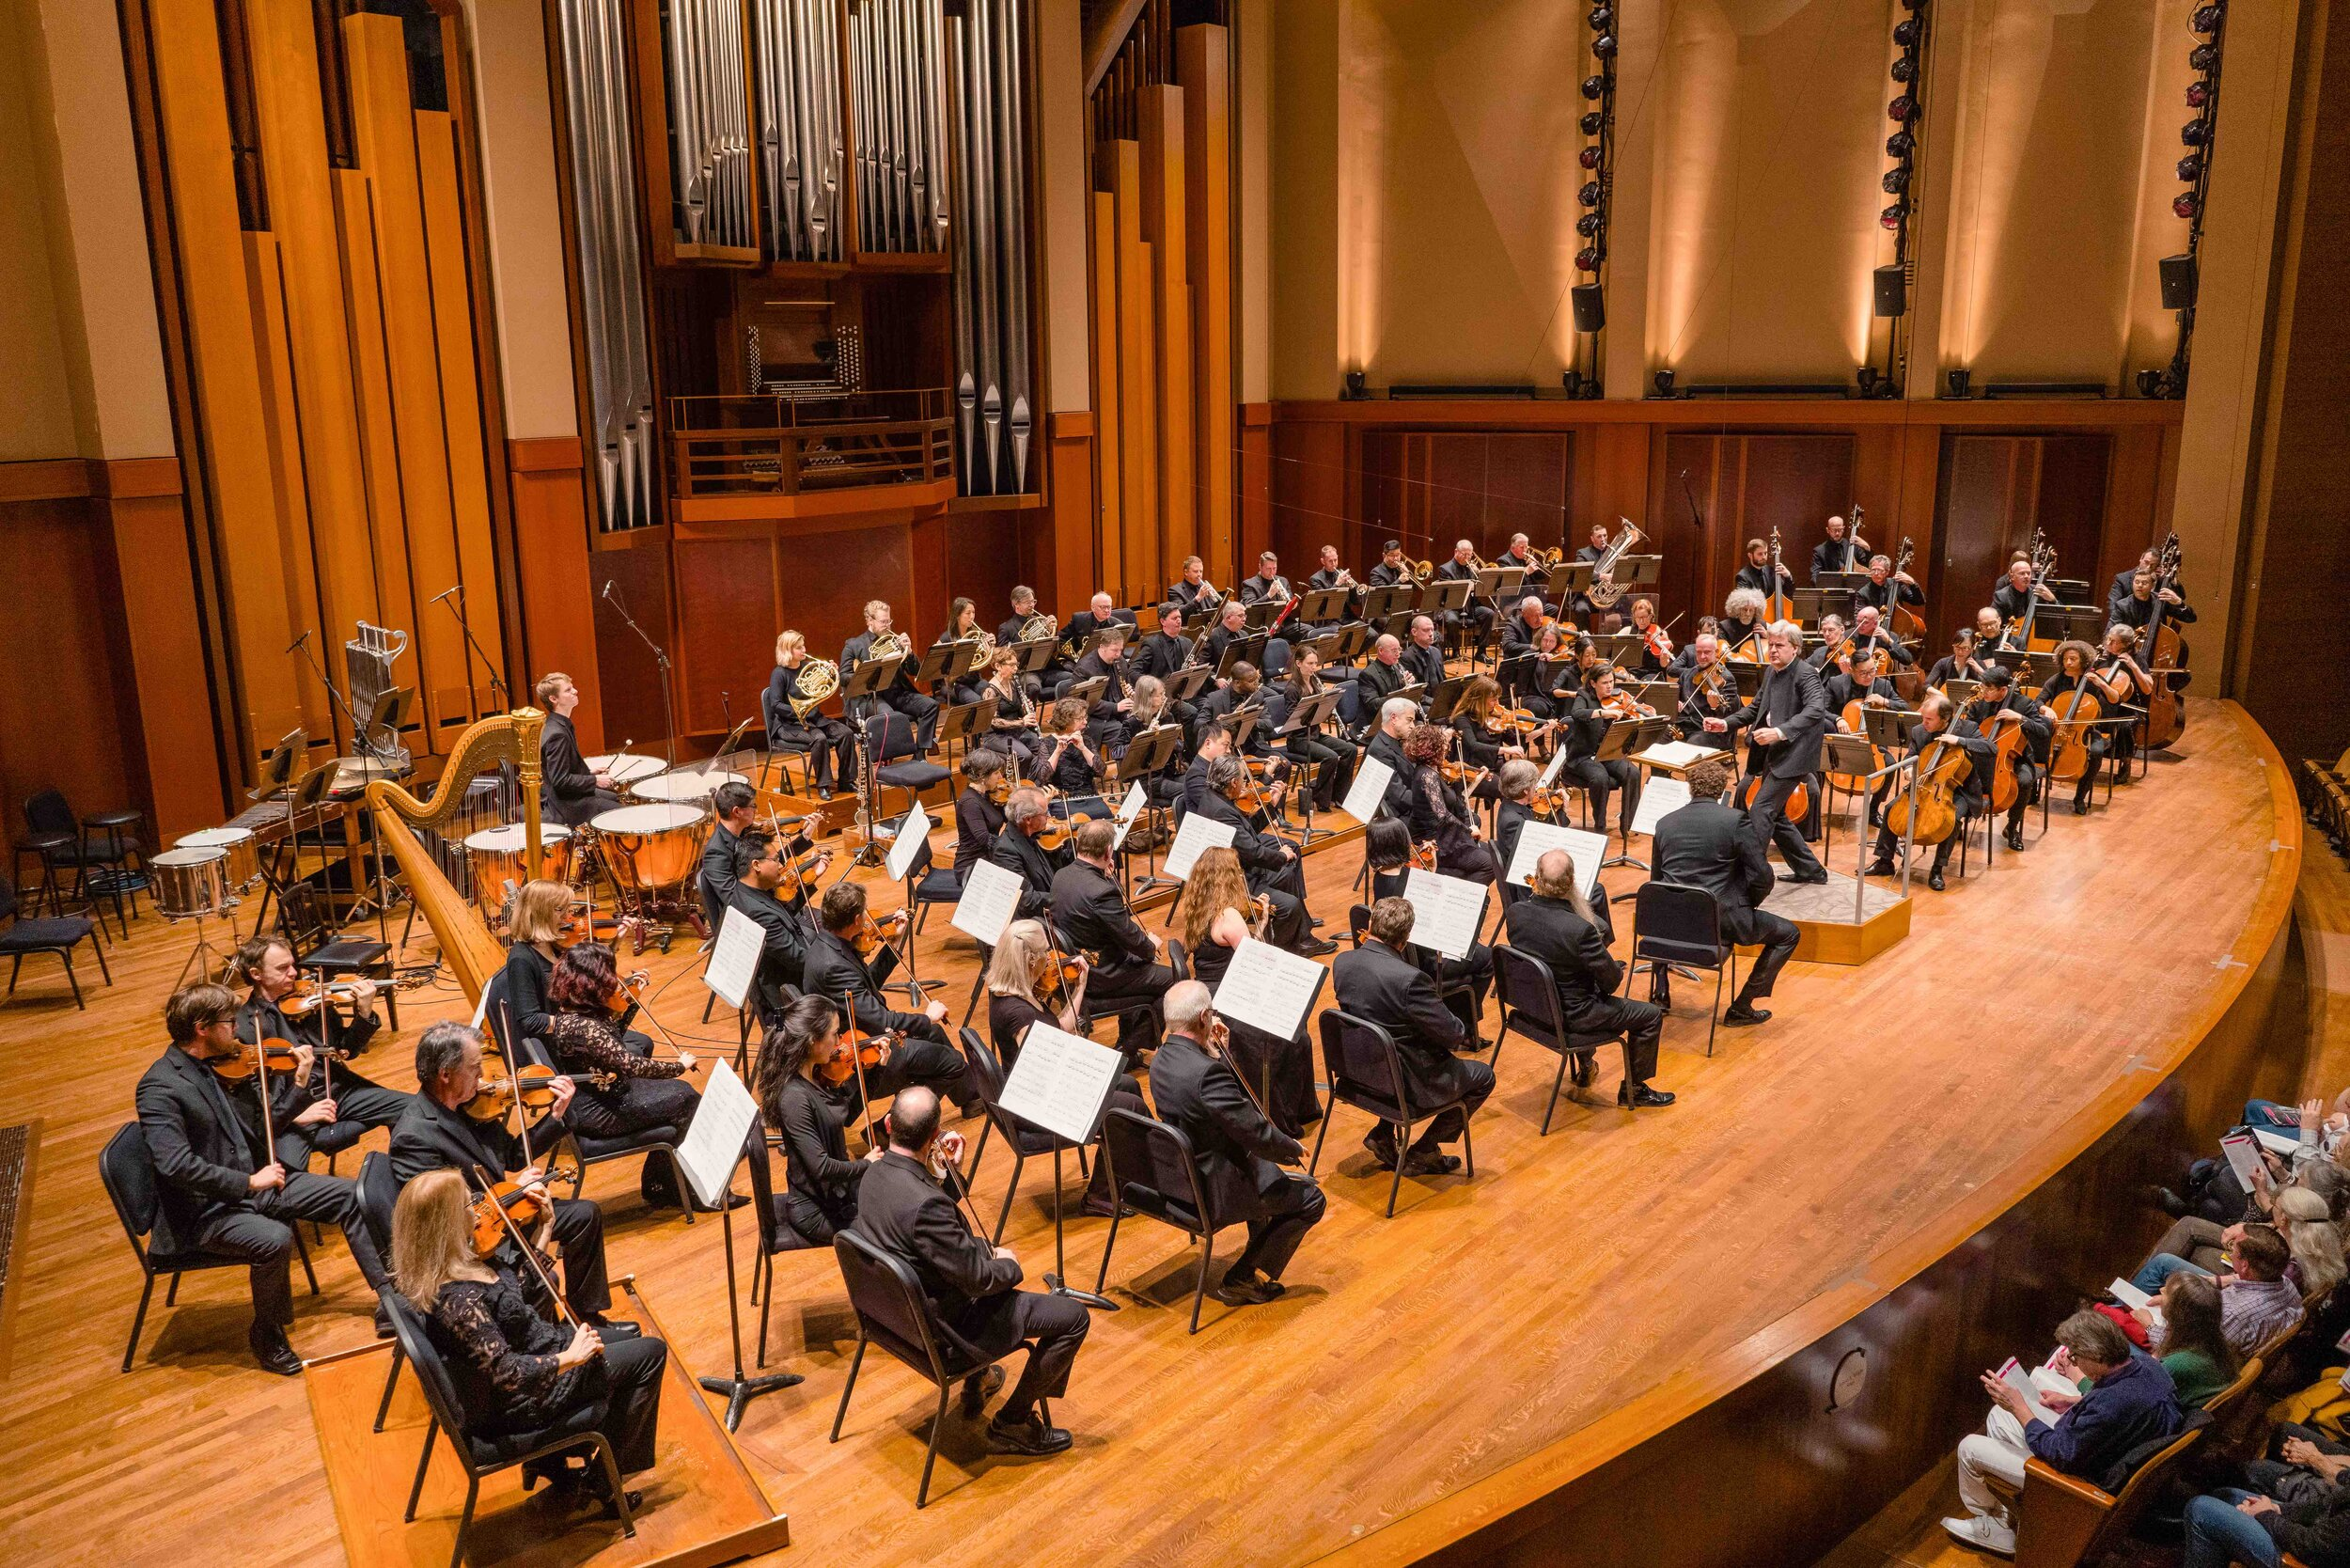 Thomas Dausgaard and the Seattle Symphony bring Strauss' An Alpine Symphony to audiences at Benaroya Hall in June 2017. The ensemble bolstered extra woodwinds and horns, two tubas, and exotic percussion such as a wind machine and thunder sheet. Photo by Brandon Patoc.